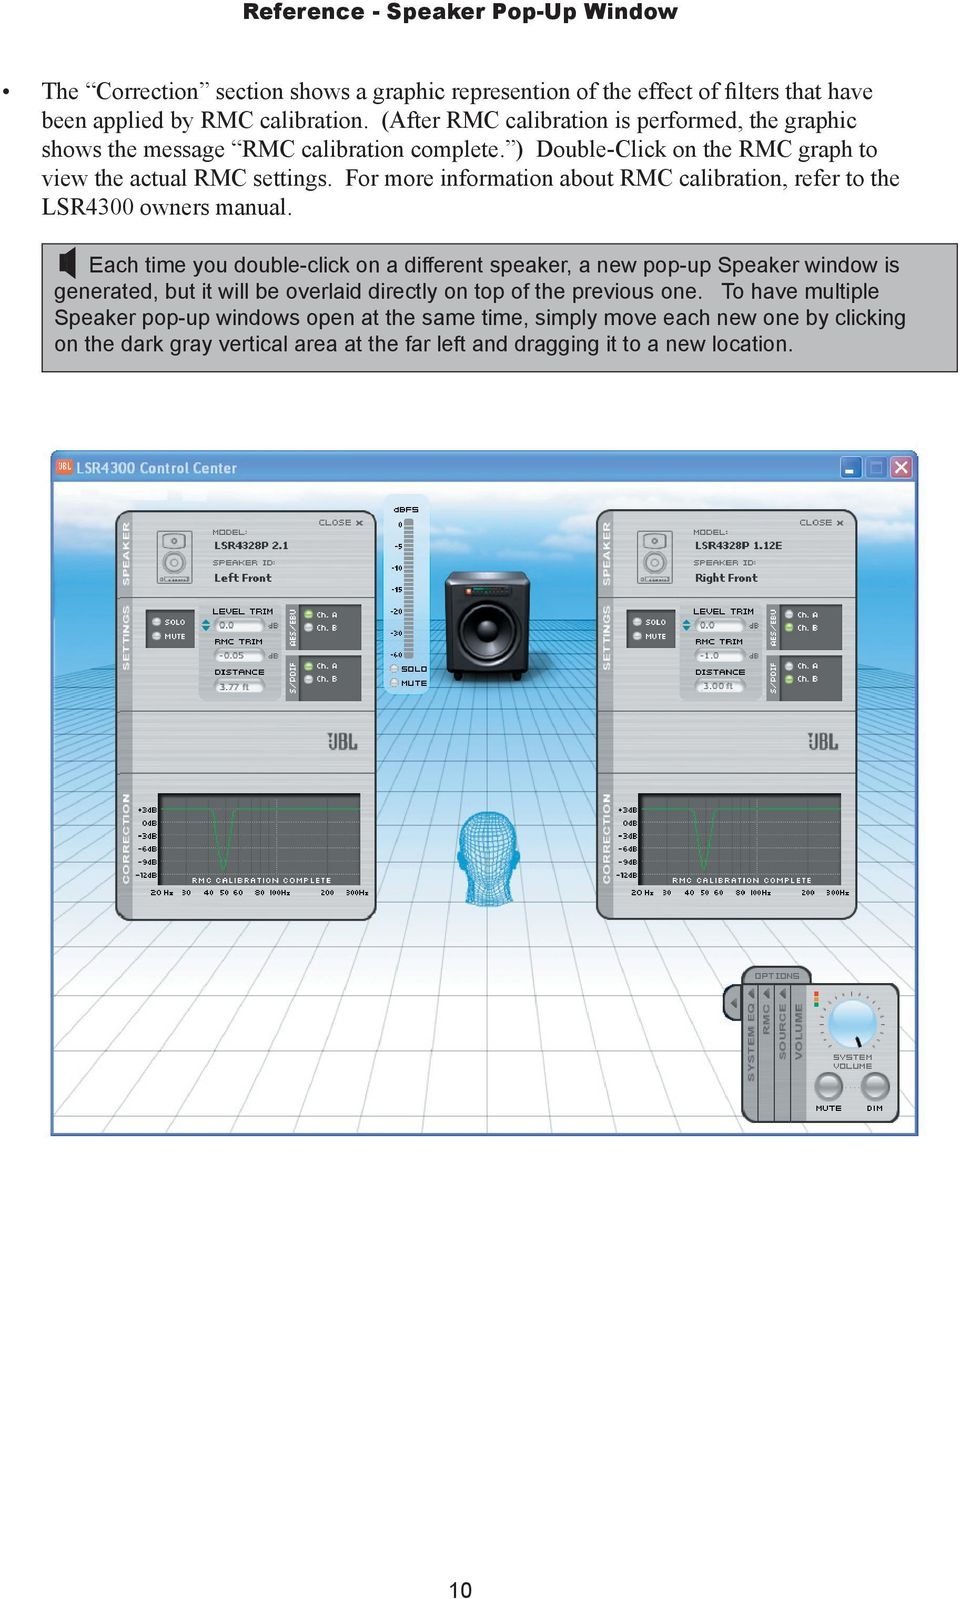 For more information about RMC calibration, refer to the LSR4300 owners manual.